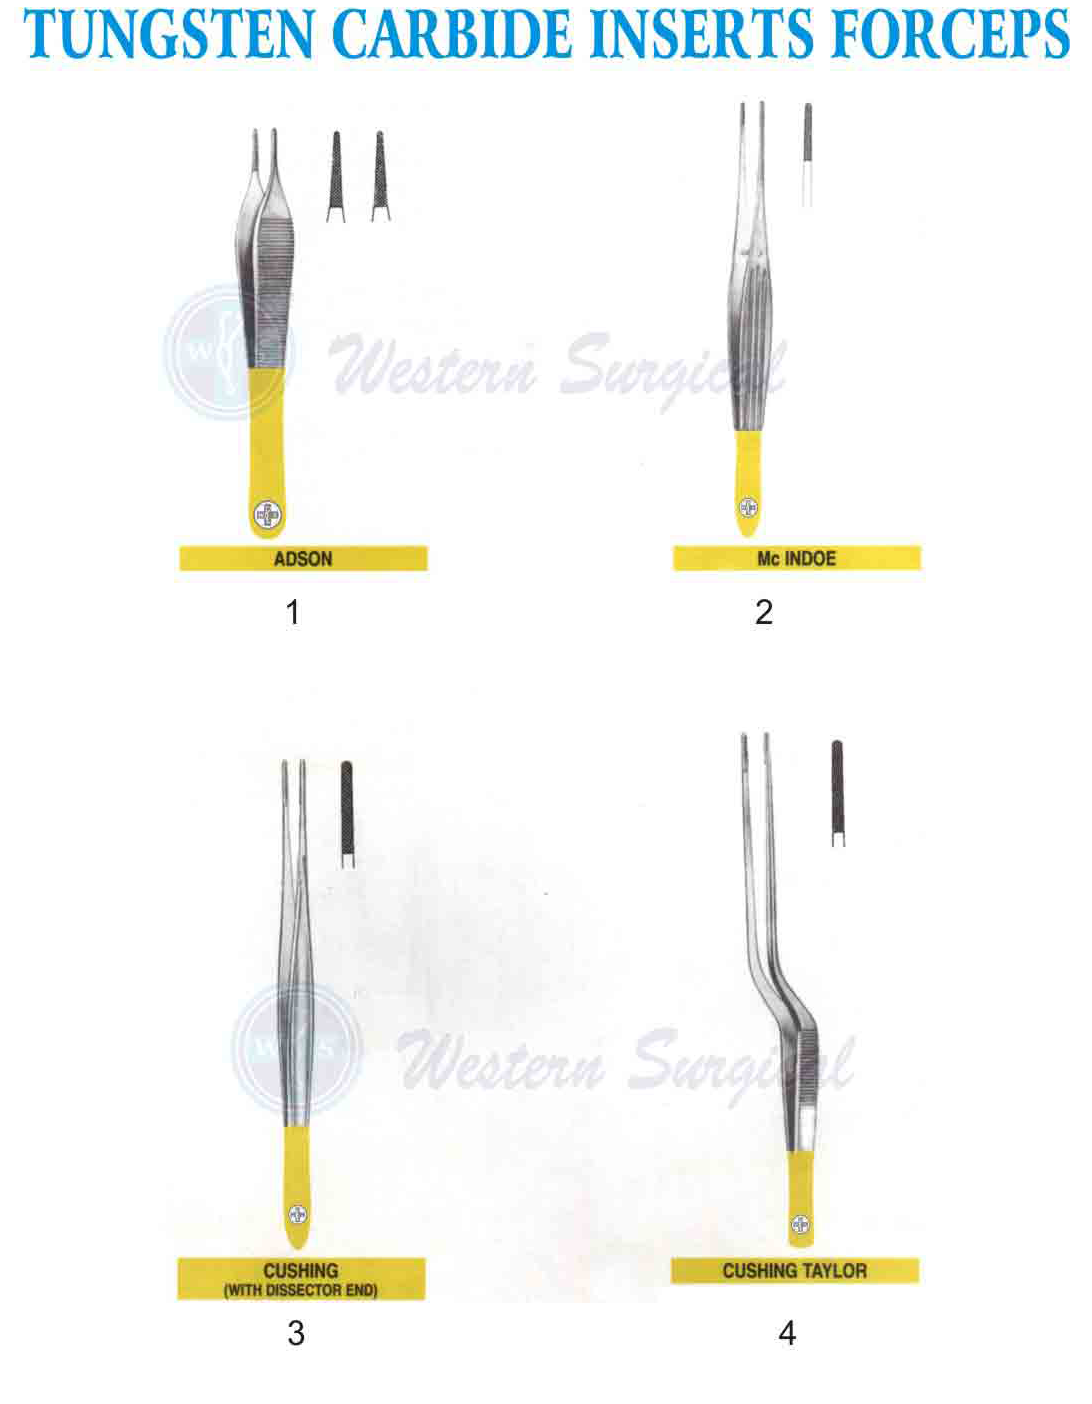 Tungsten Carbide inserts Forceps